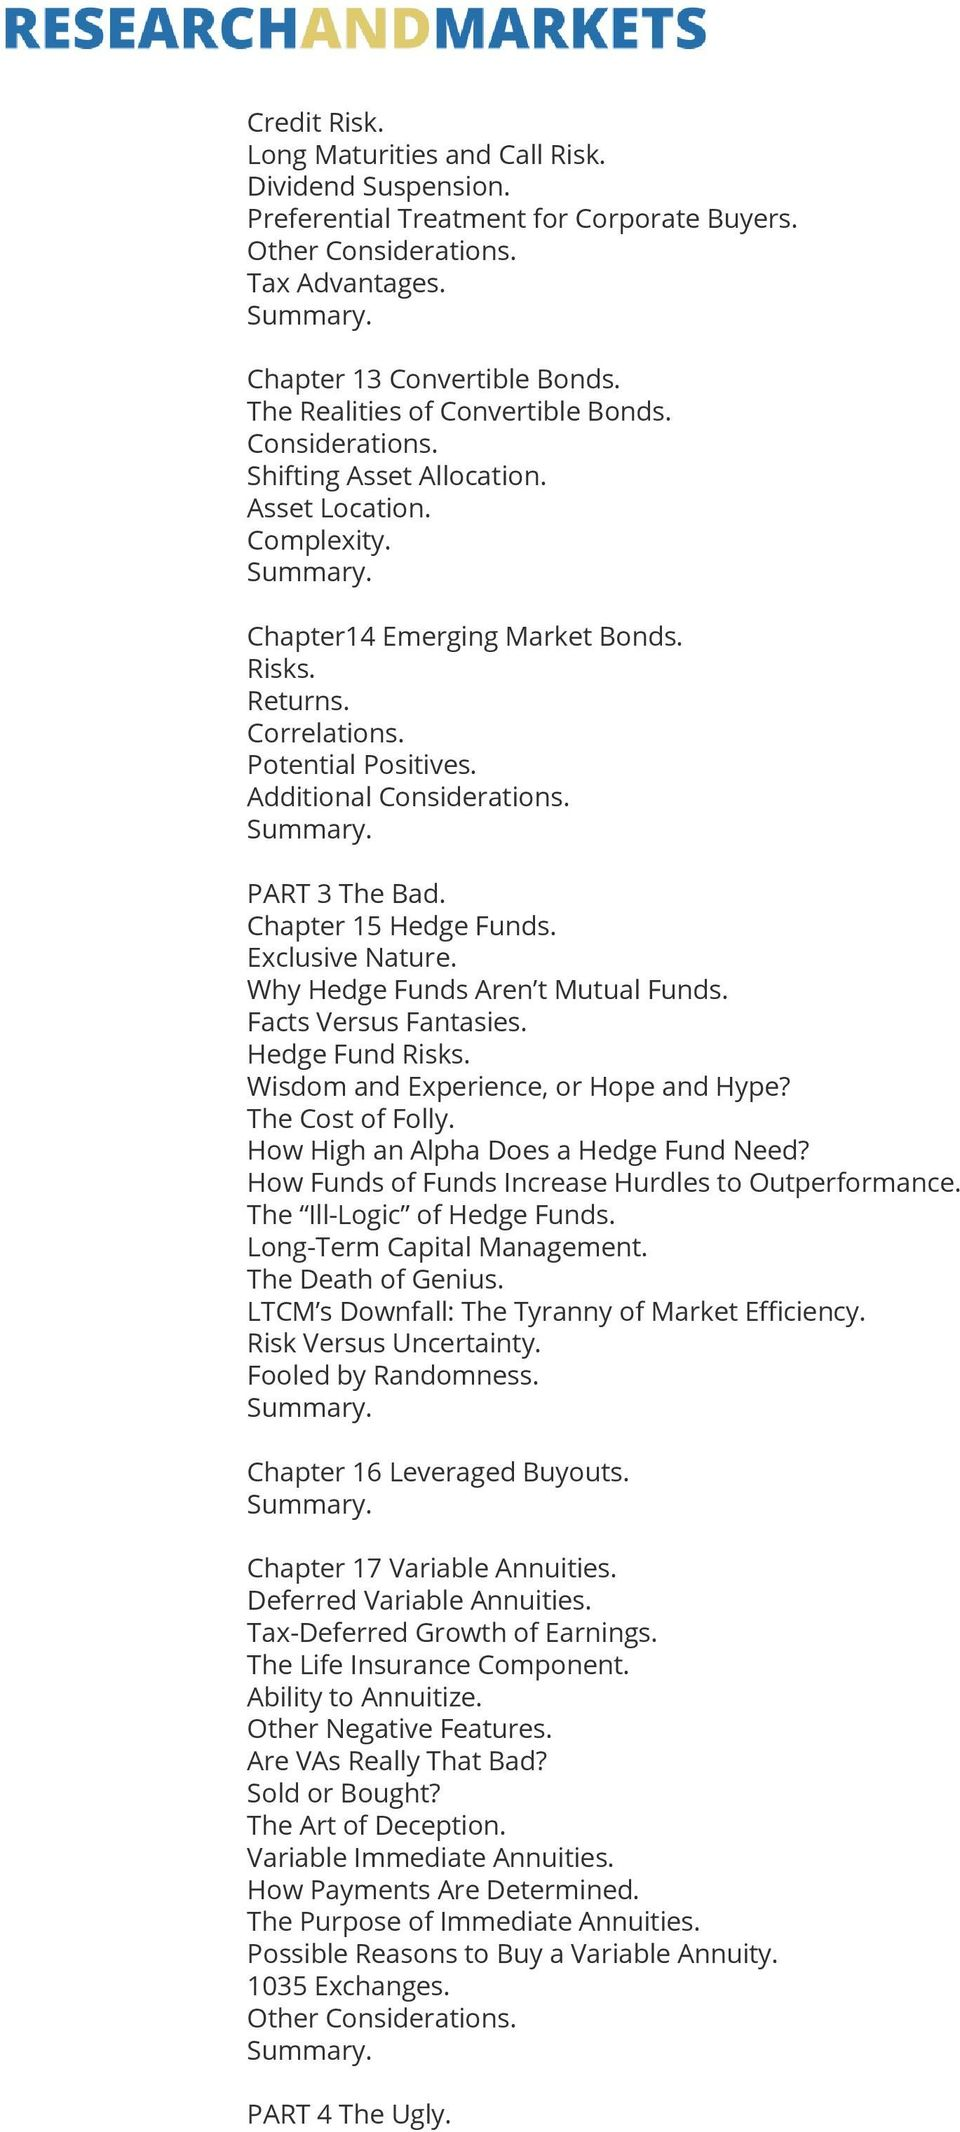 Additional Considerations. PART 3 The Bad. Chapter 15 Hedge Funds. Exclusive Nature. Why Hedge Funds Aren t Mutual Funds. Facts Versus Fantasies. Hedge Fund Risks.